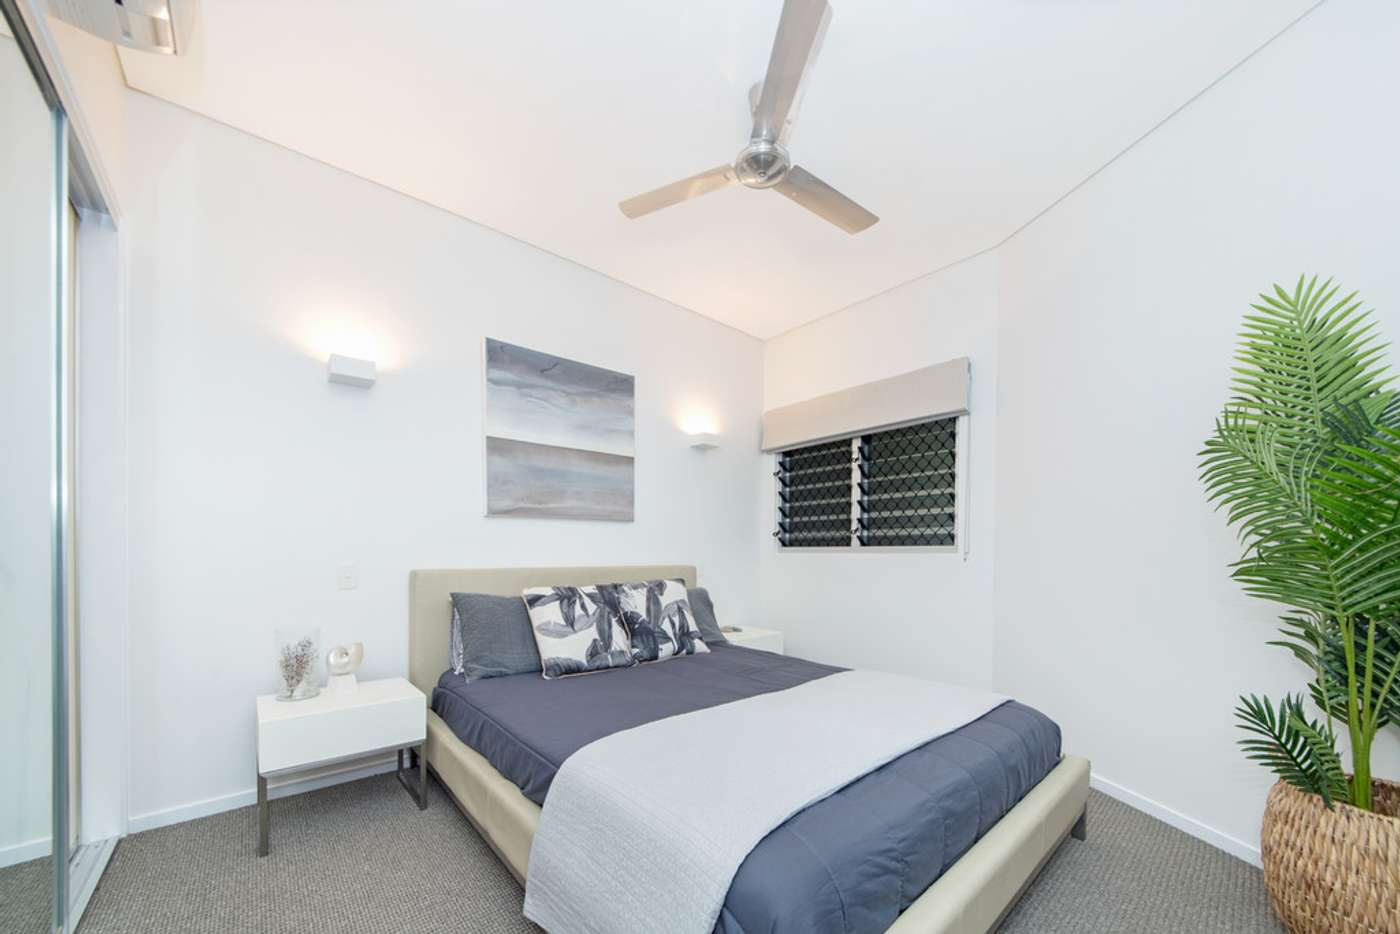 Sixth view of Homely apartment listing, 23/96-98 Mitchell Street, North Ward QLD 4810